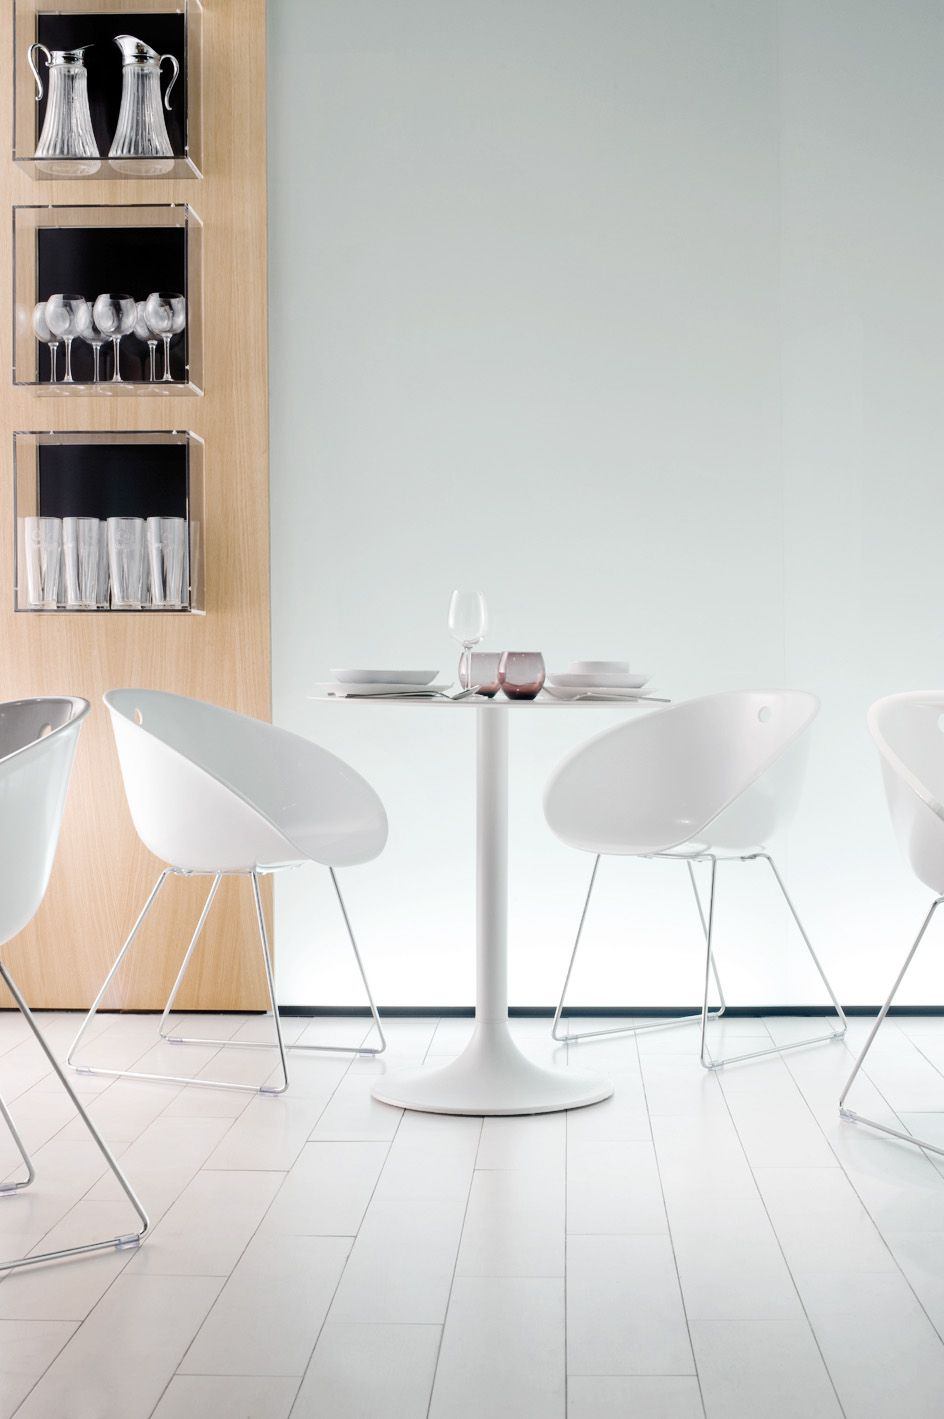 Gliss Chair Pedrali Dining Table Chair Home Decor